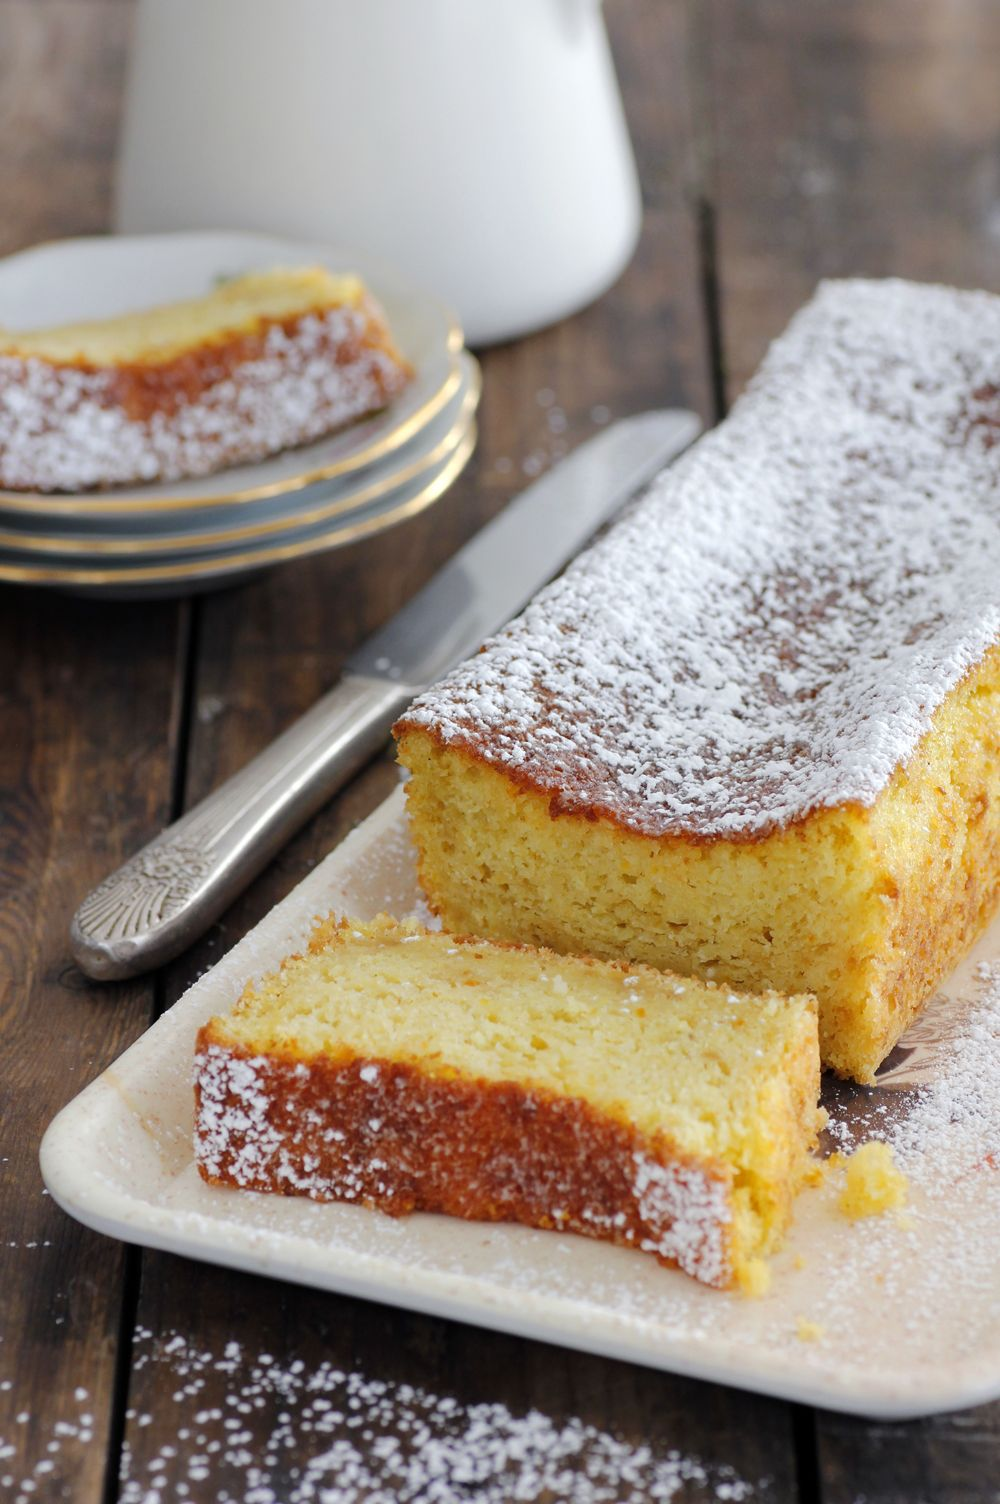 Juicy Orange Cake